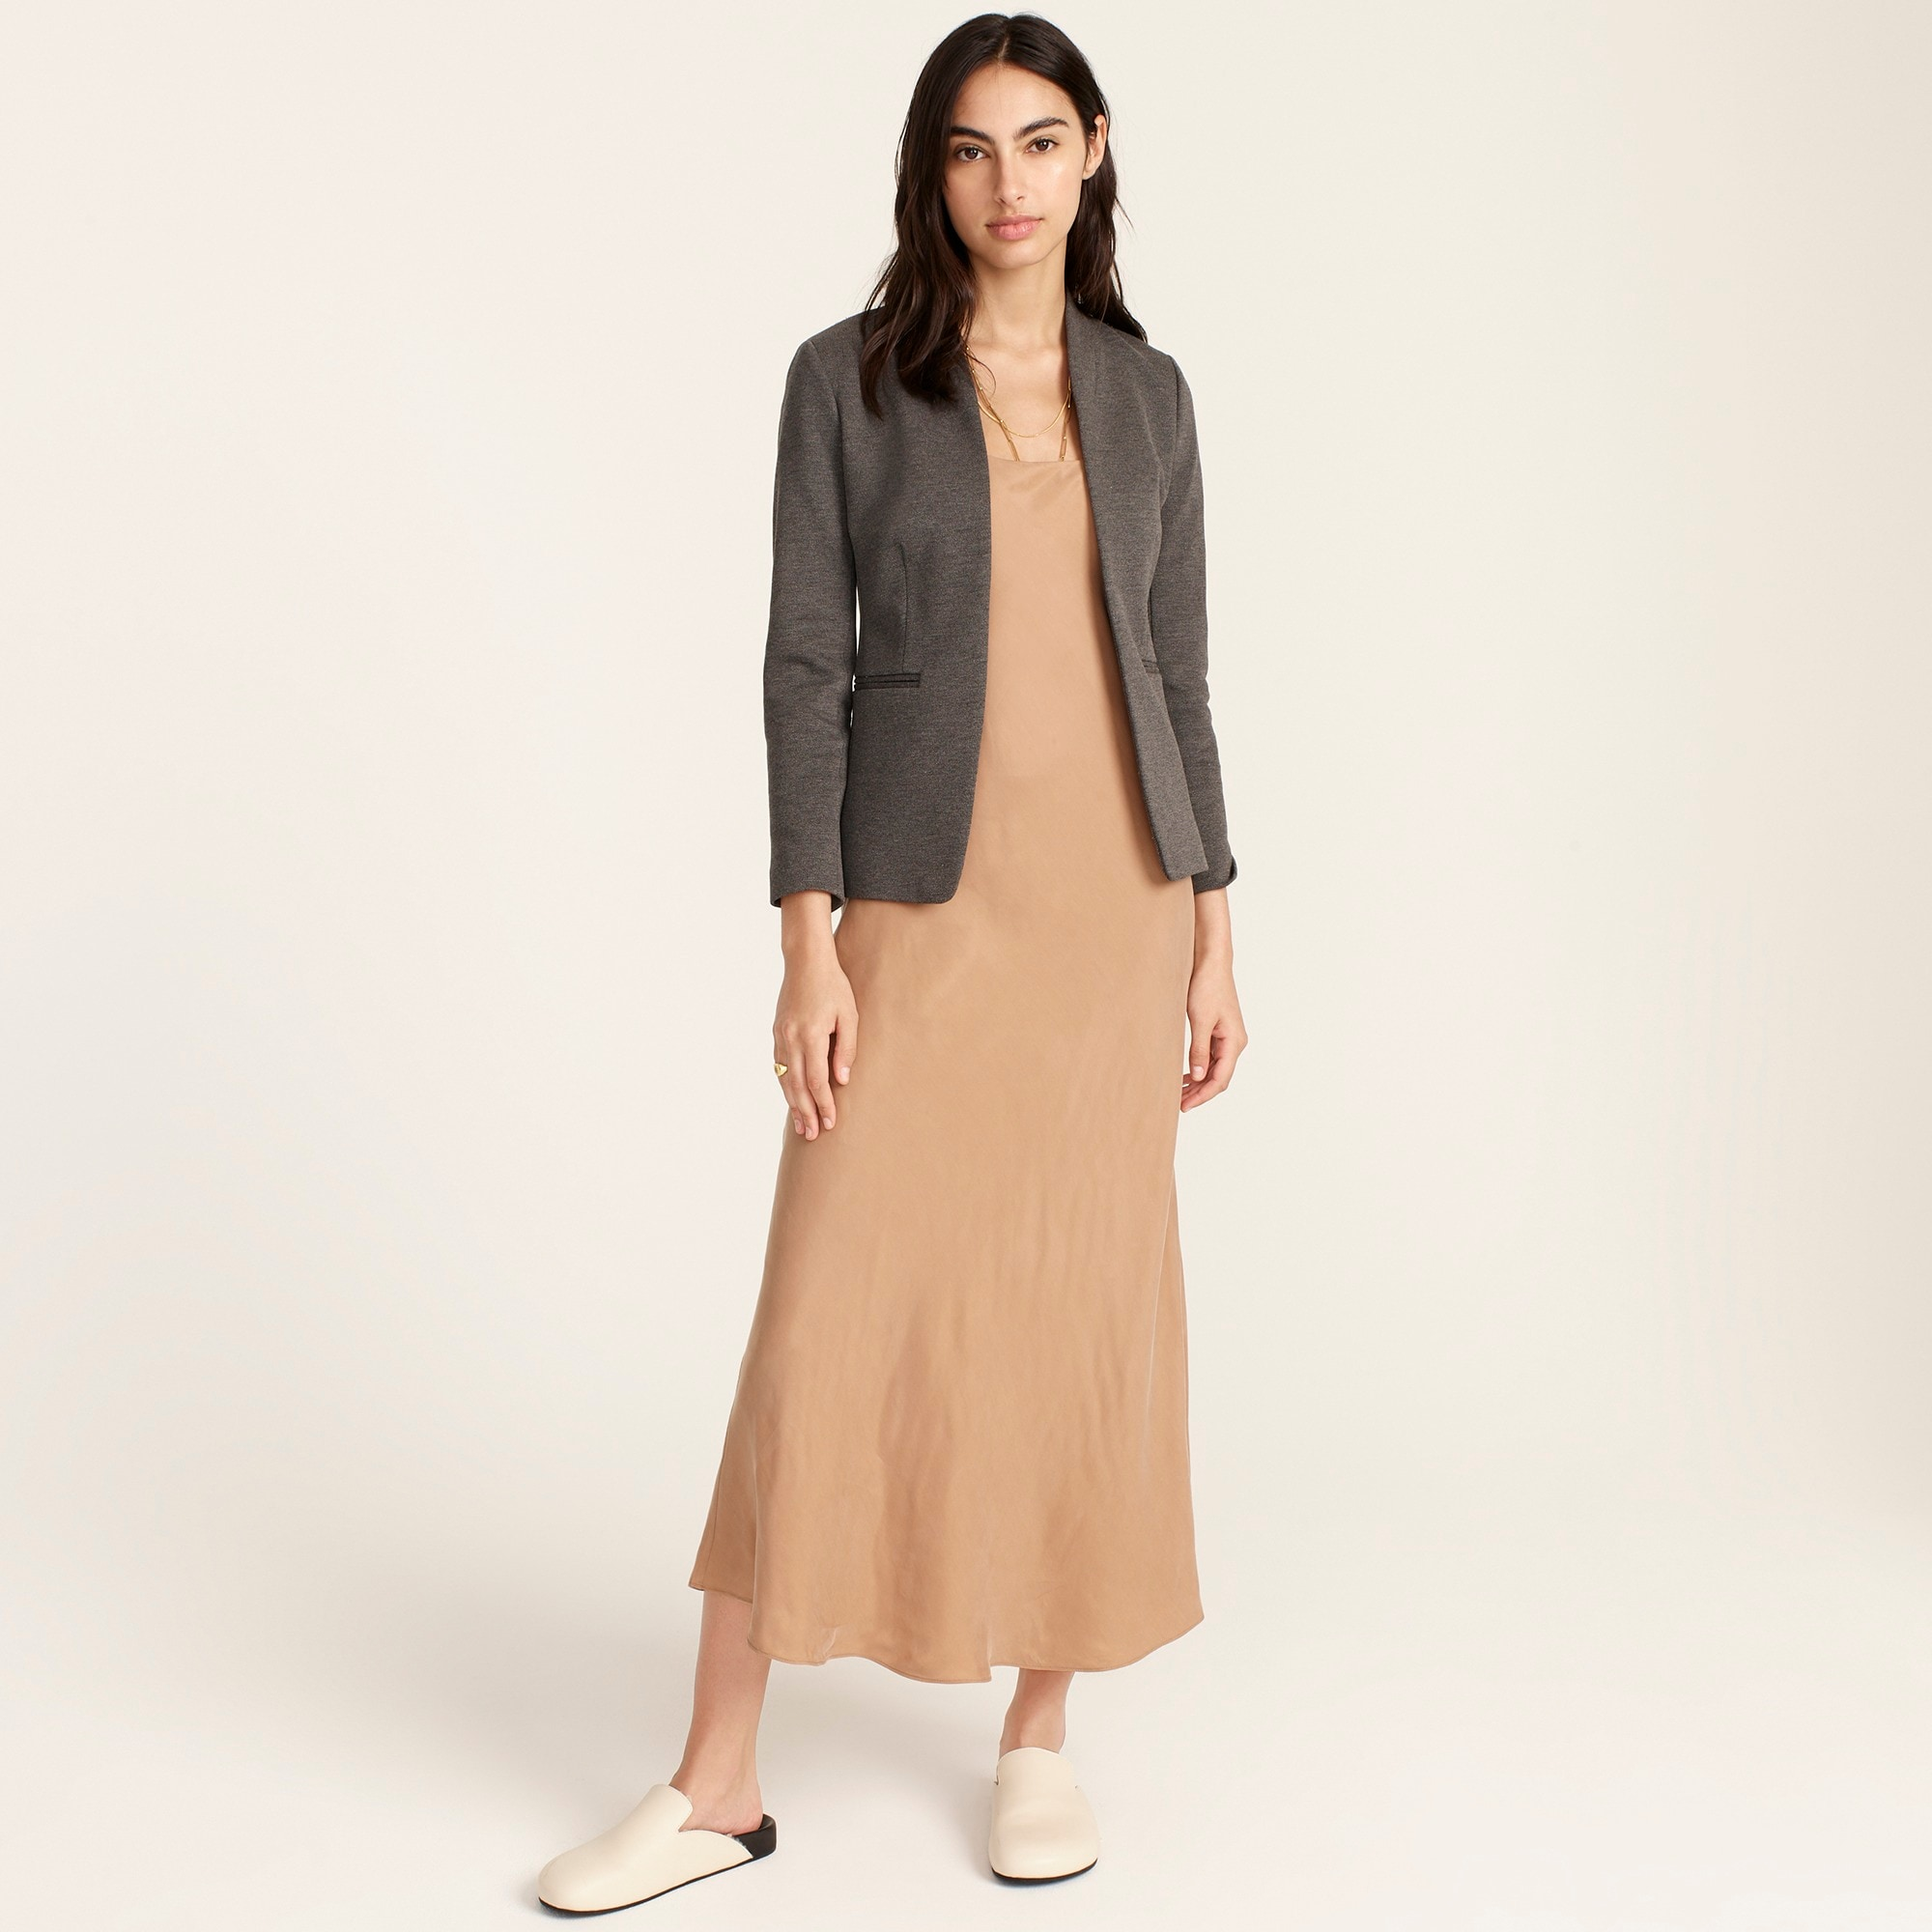 Image 2 for Petite going-out blazer in stretch twill